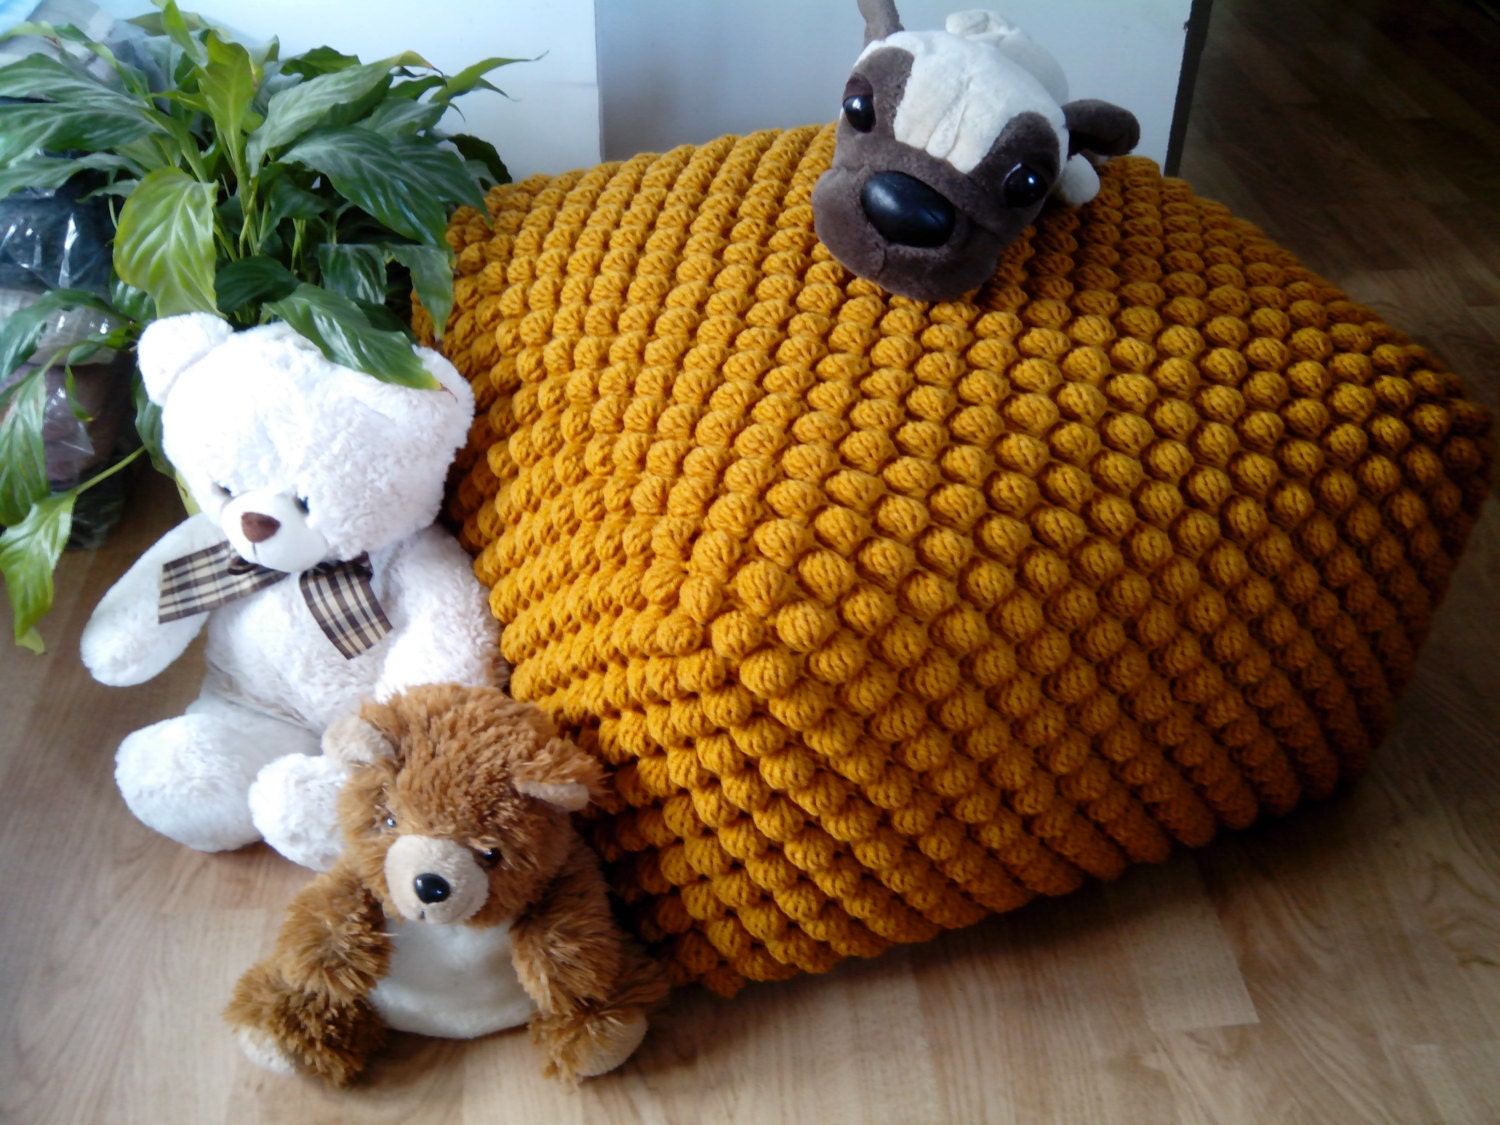 to pouf pertaining knit ottoman ideas target knitted